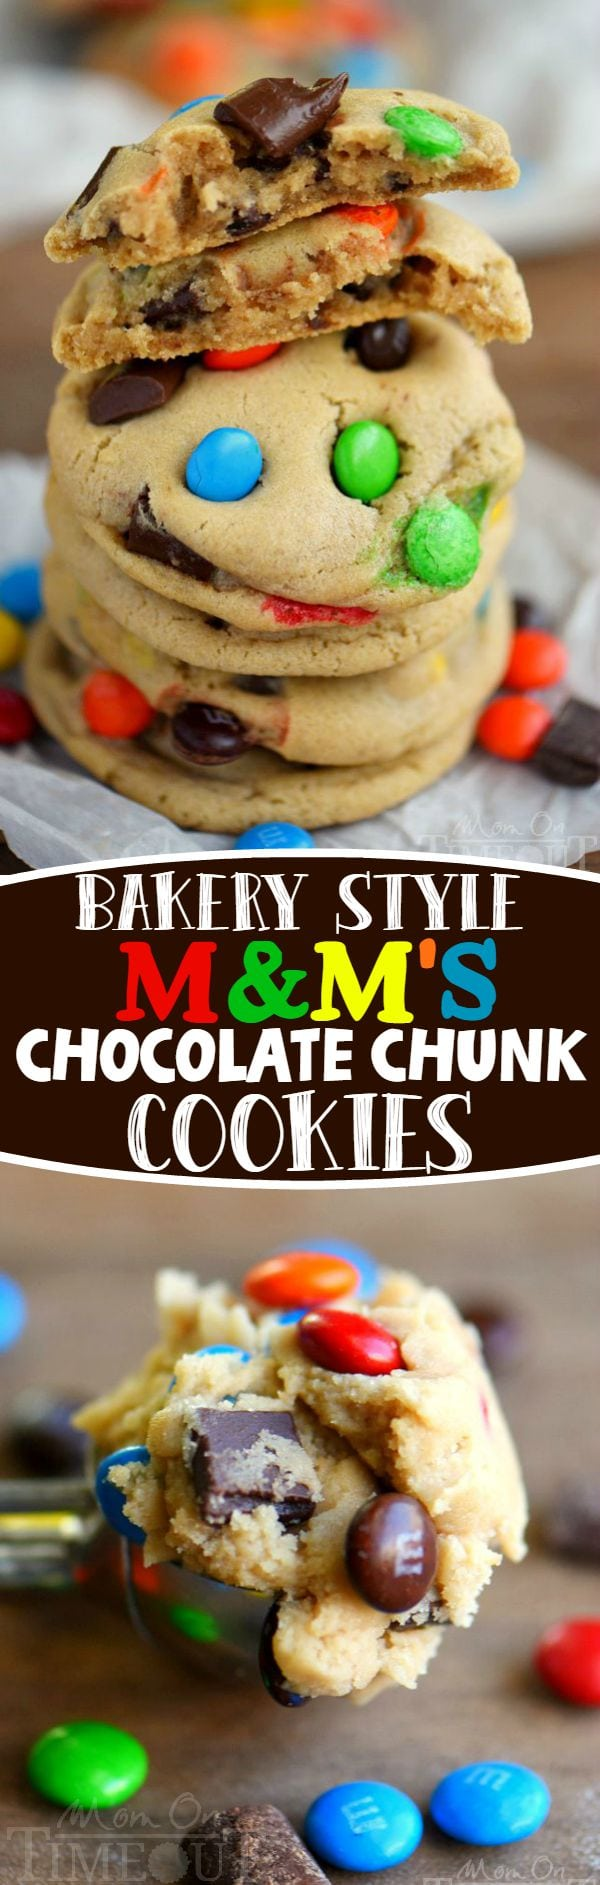 bakery-style-mms-chocolate-chunk-cookies-recipe-collage